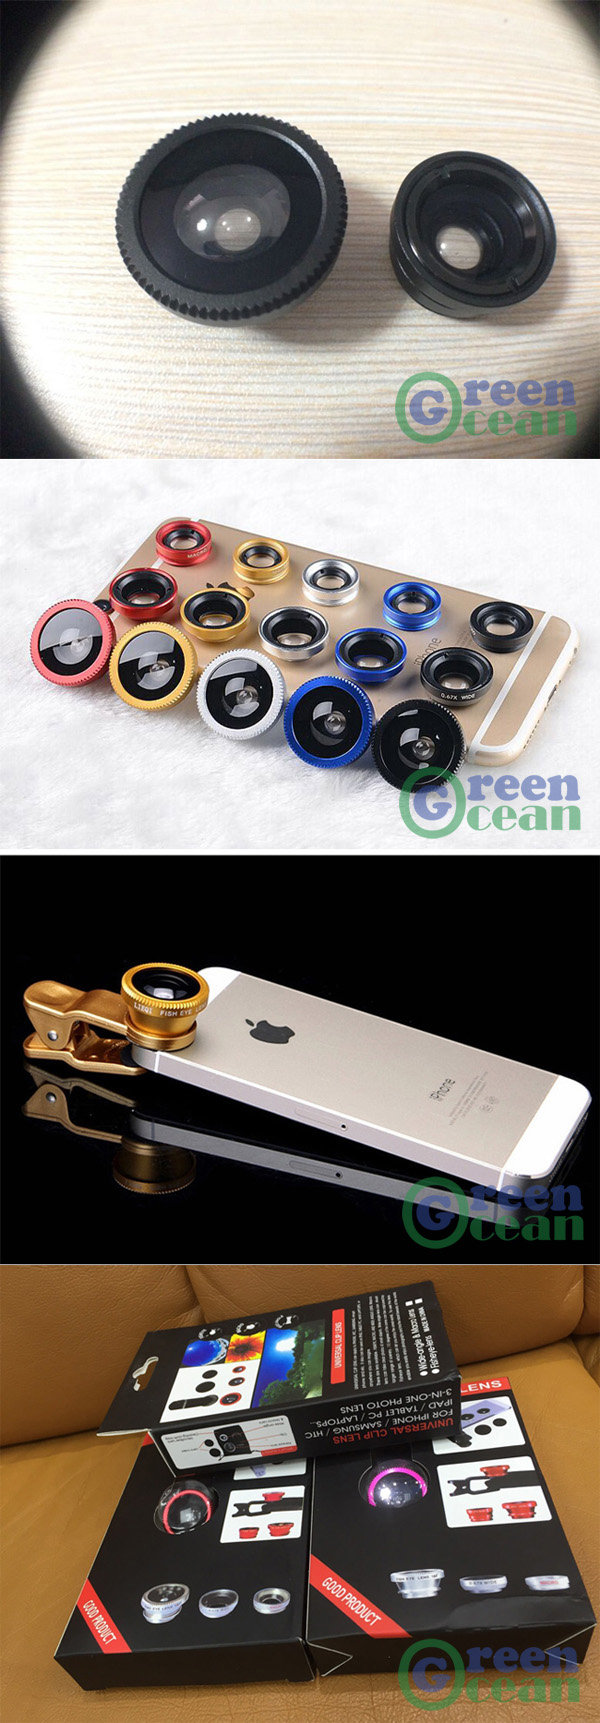 180 Fisheye, 0.65x Wide Angle, 10x Macro for Most Mobile Phones Apple, Samsung, LG, Sony